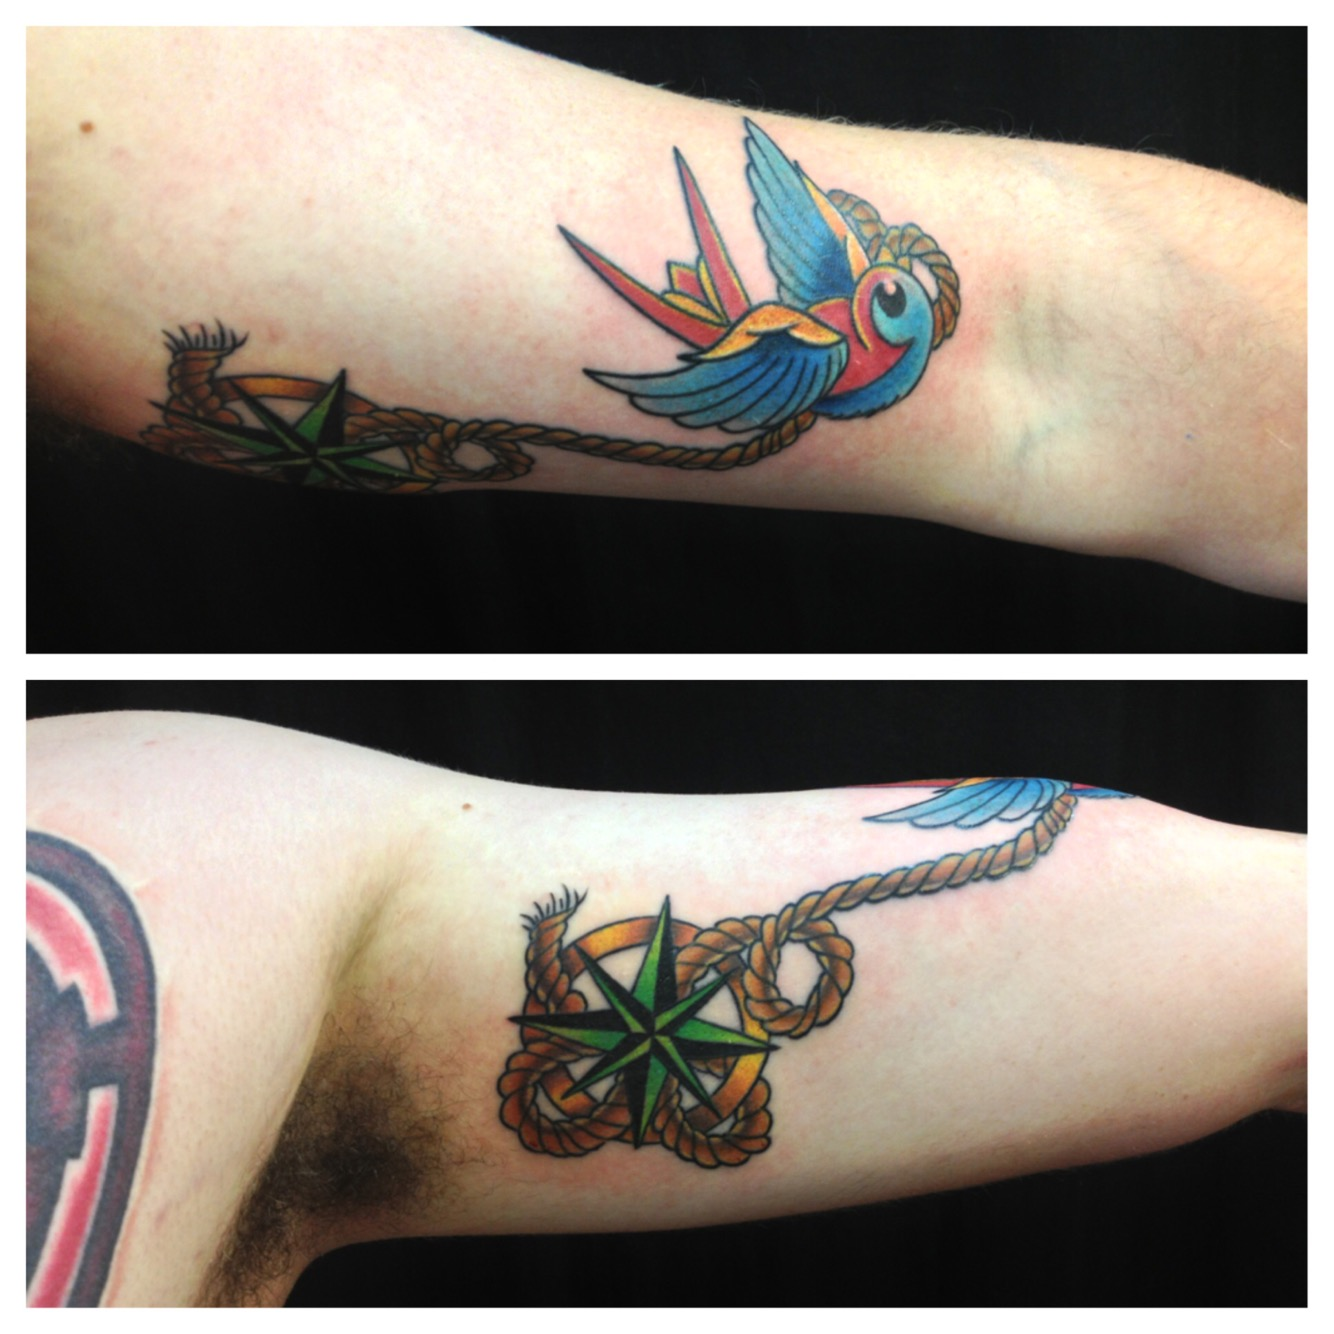 American traditional swallow and compass rose with rope